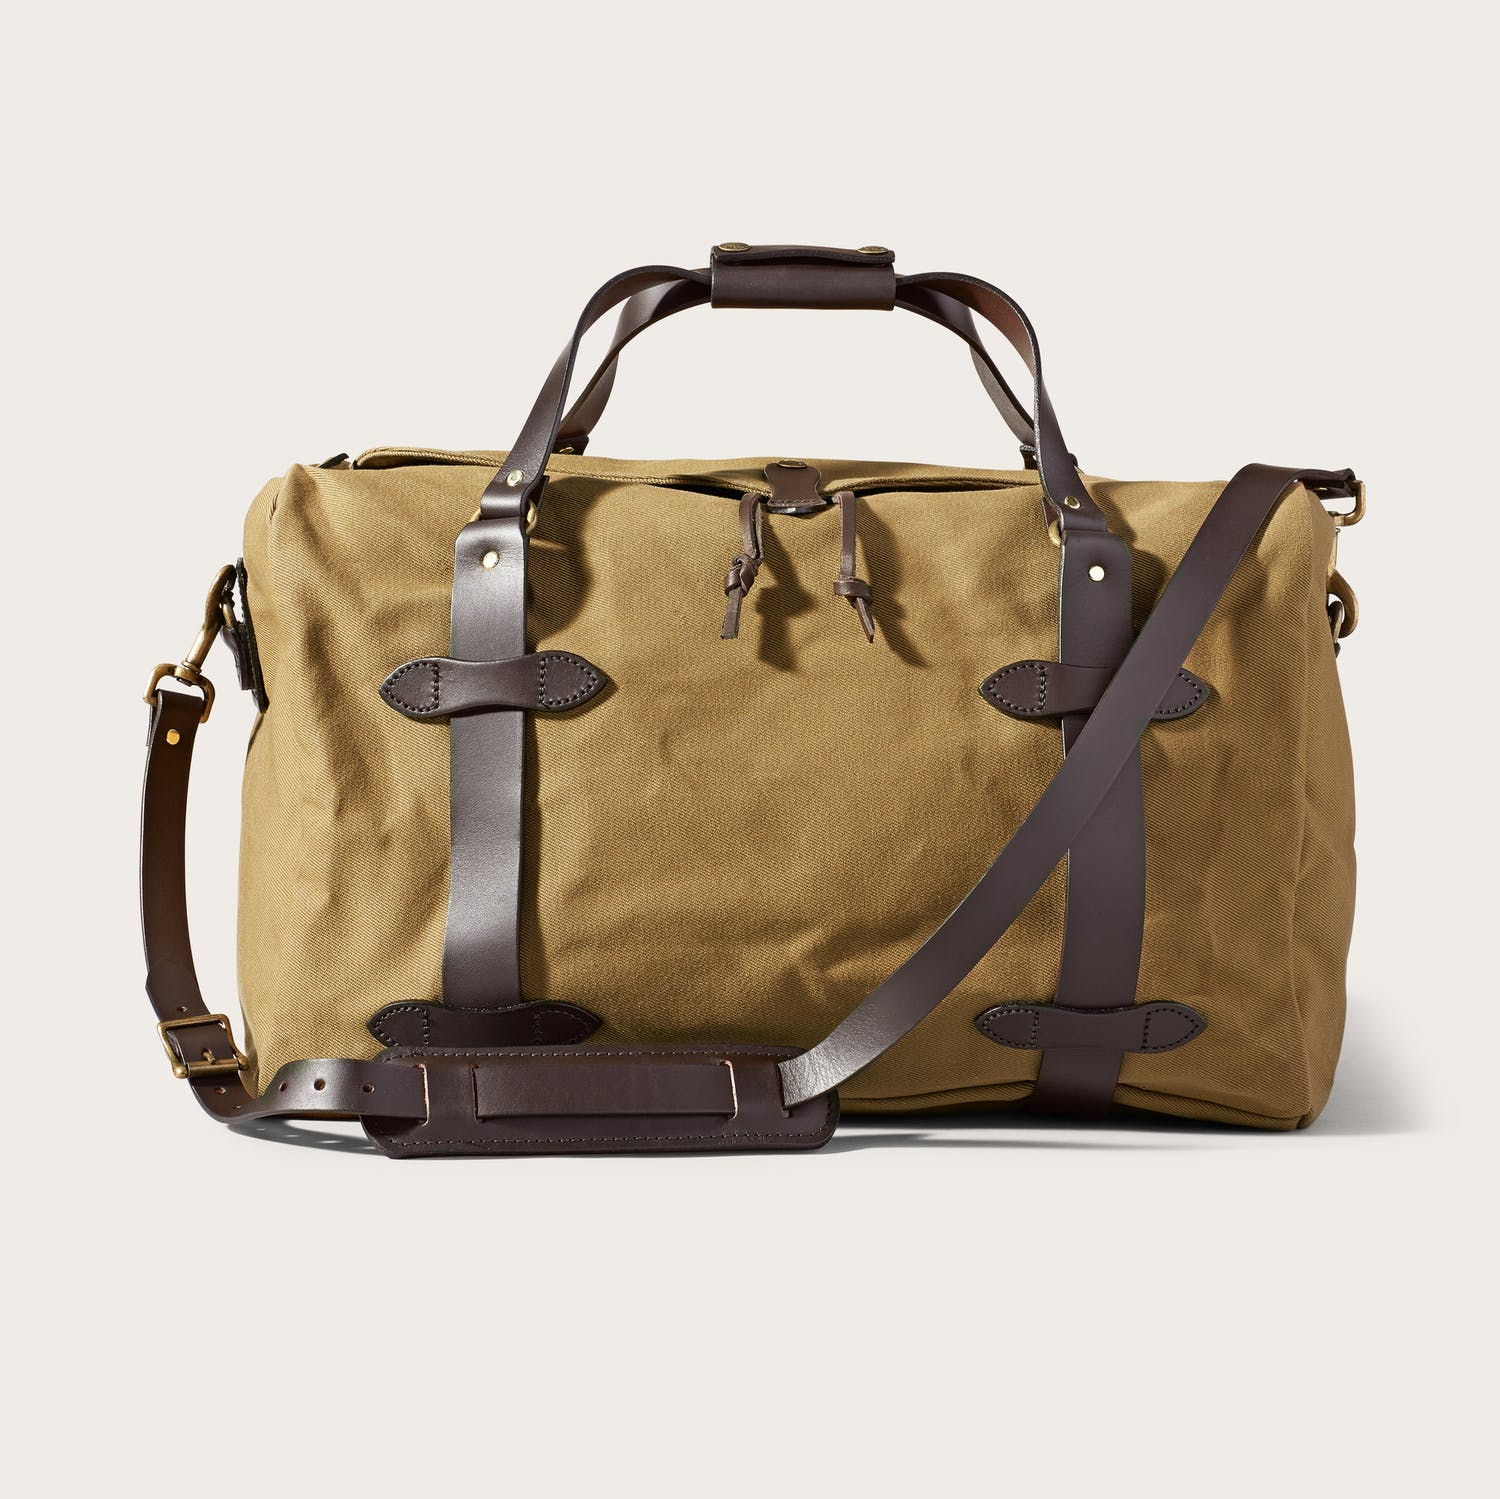 FILSON - Medium Duffel Bag - Tan